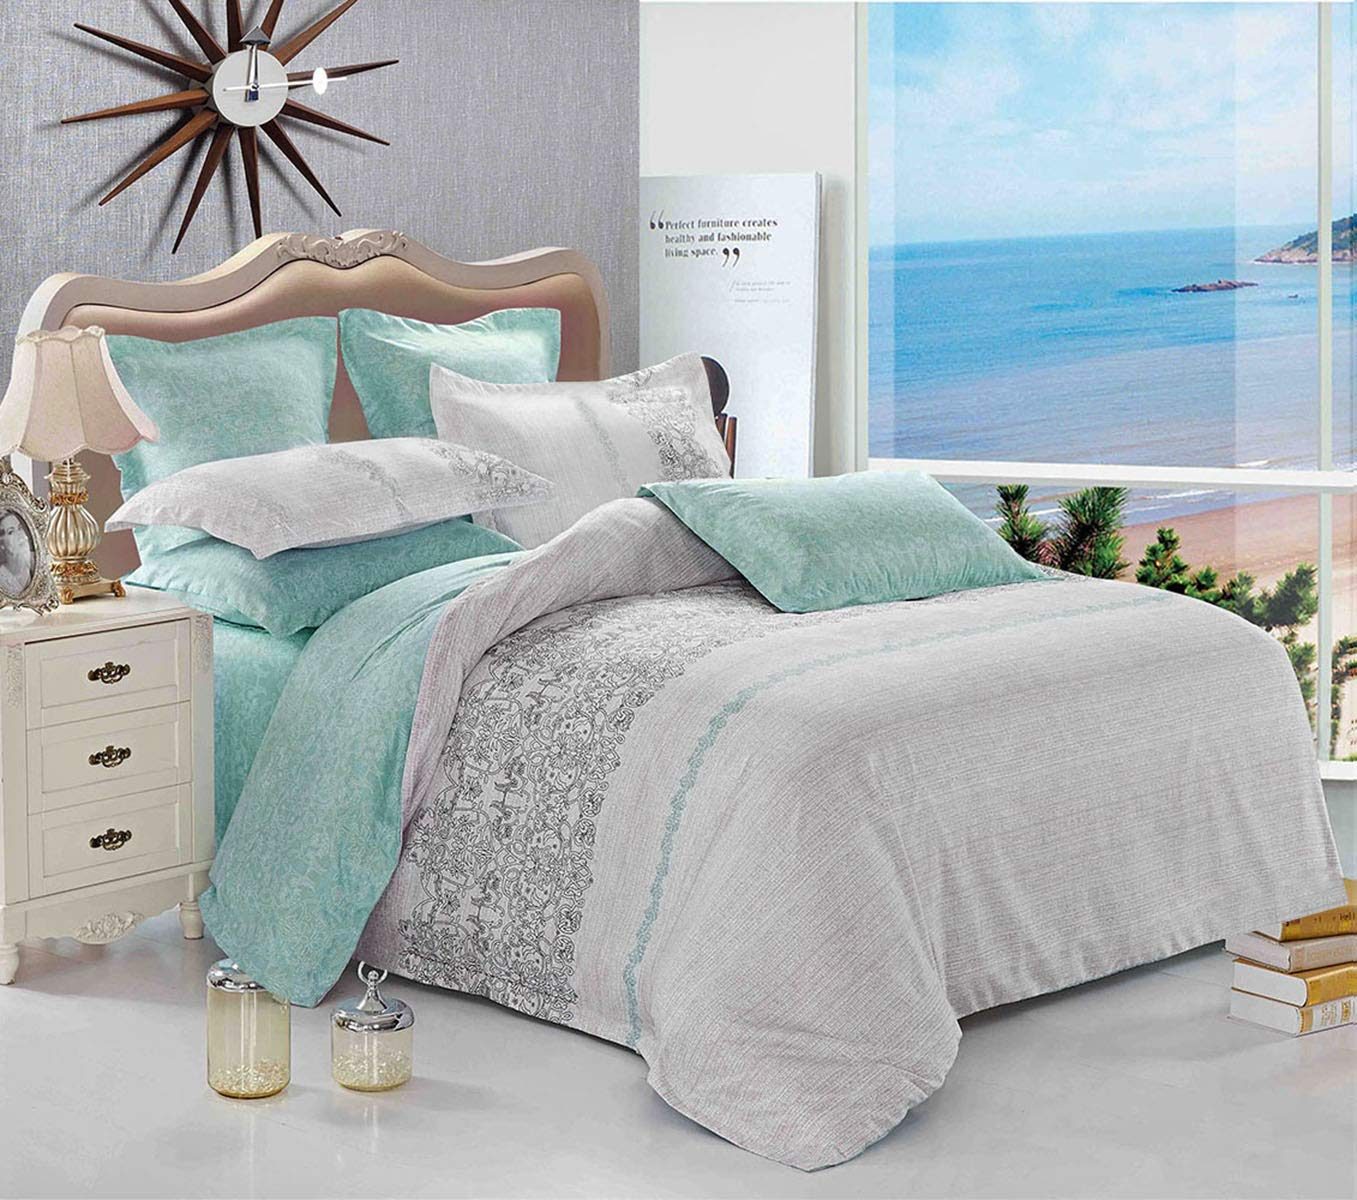 Wake In Cloud - Gray Teal Comforter Set, Reversible with Grey and Turquoise Pattern Printed, Soft Microfiber Bedding (3pcs, Queen Size) by Wake In Cloud (Image #3)